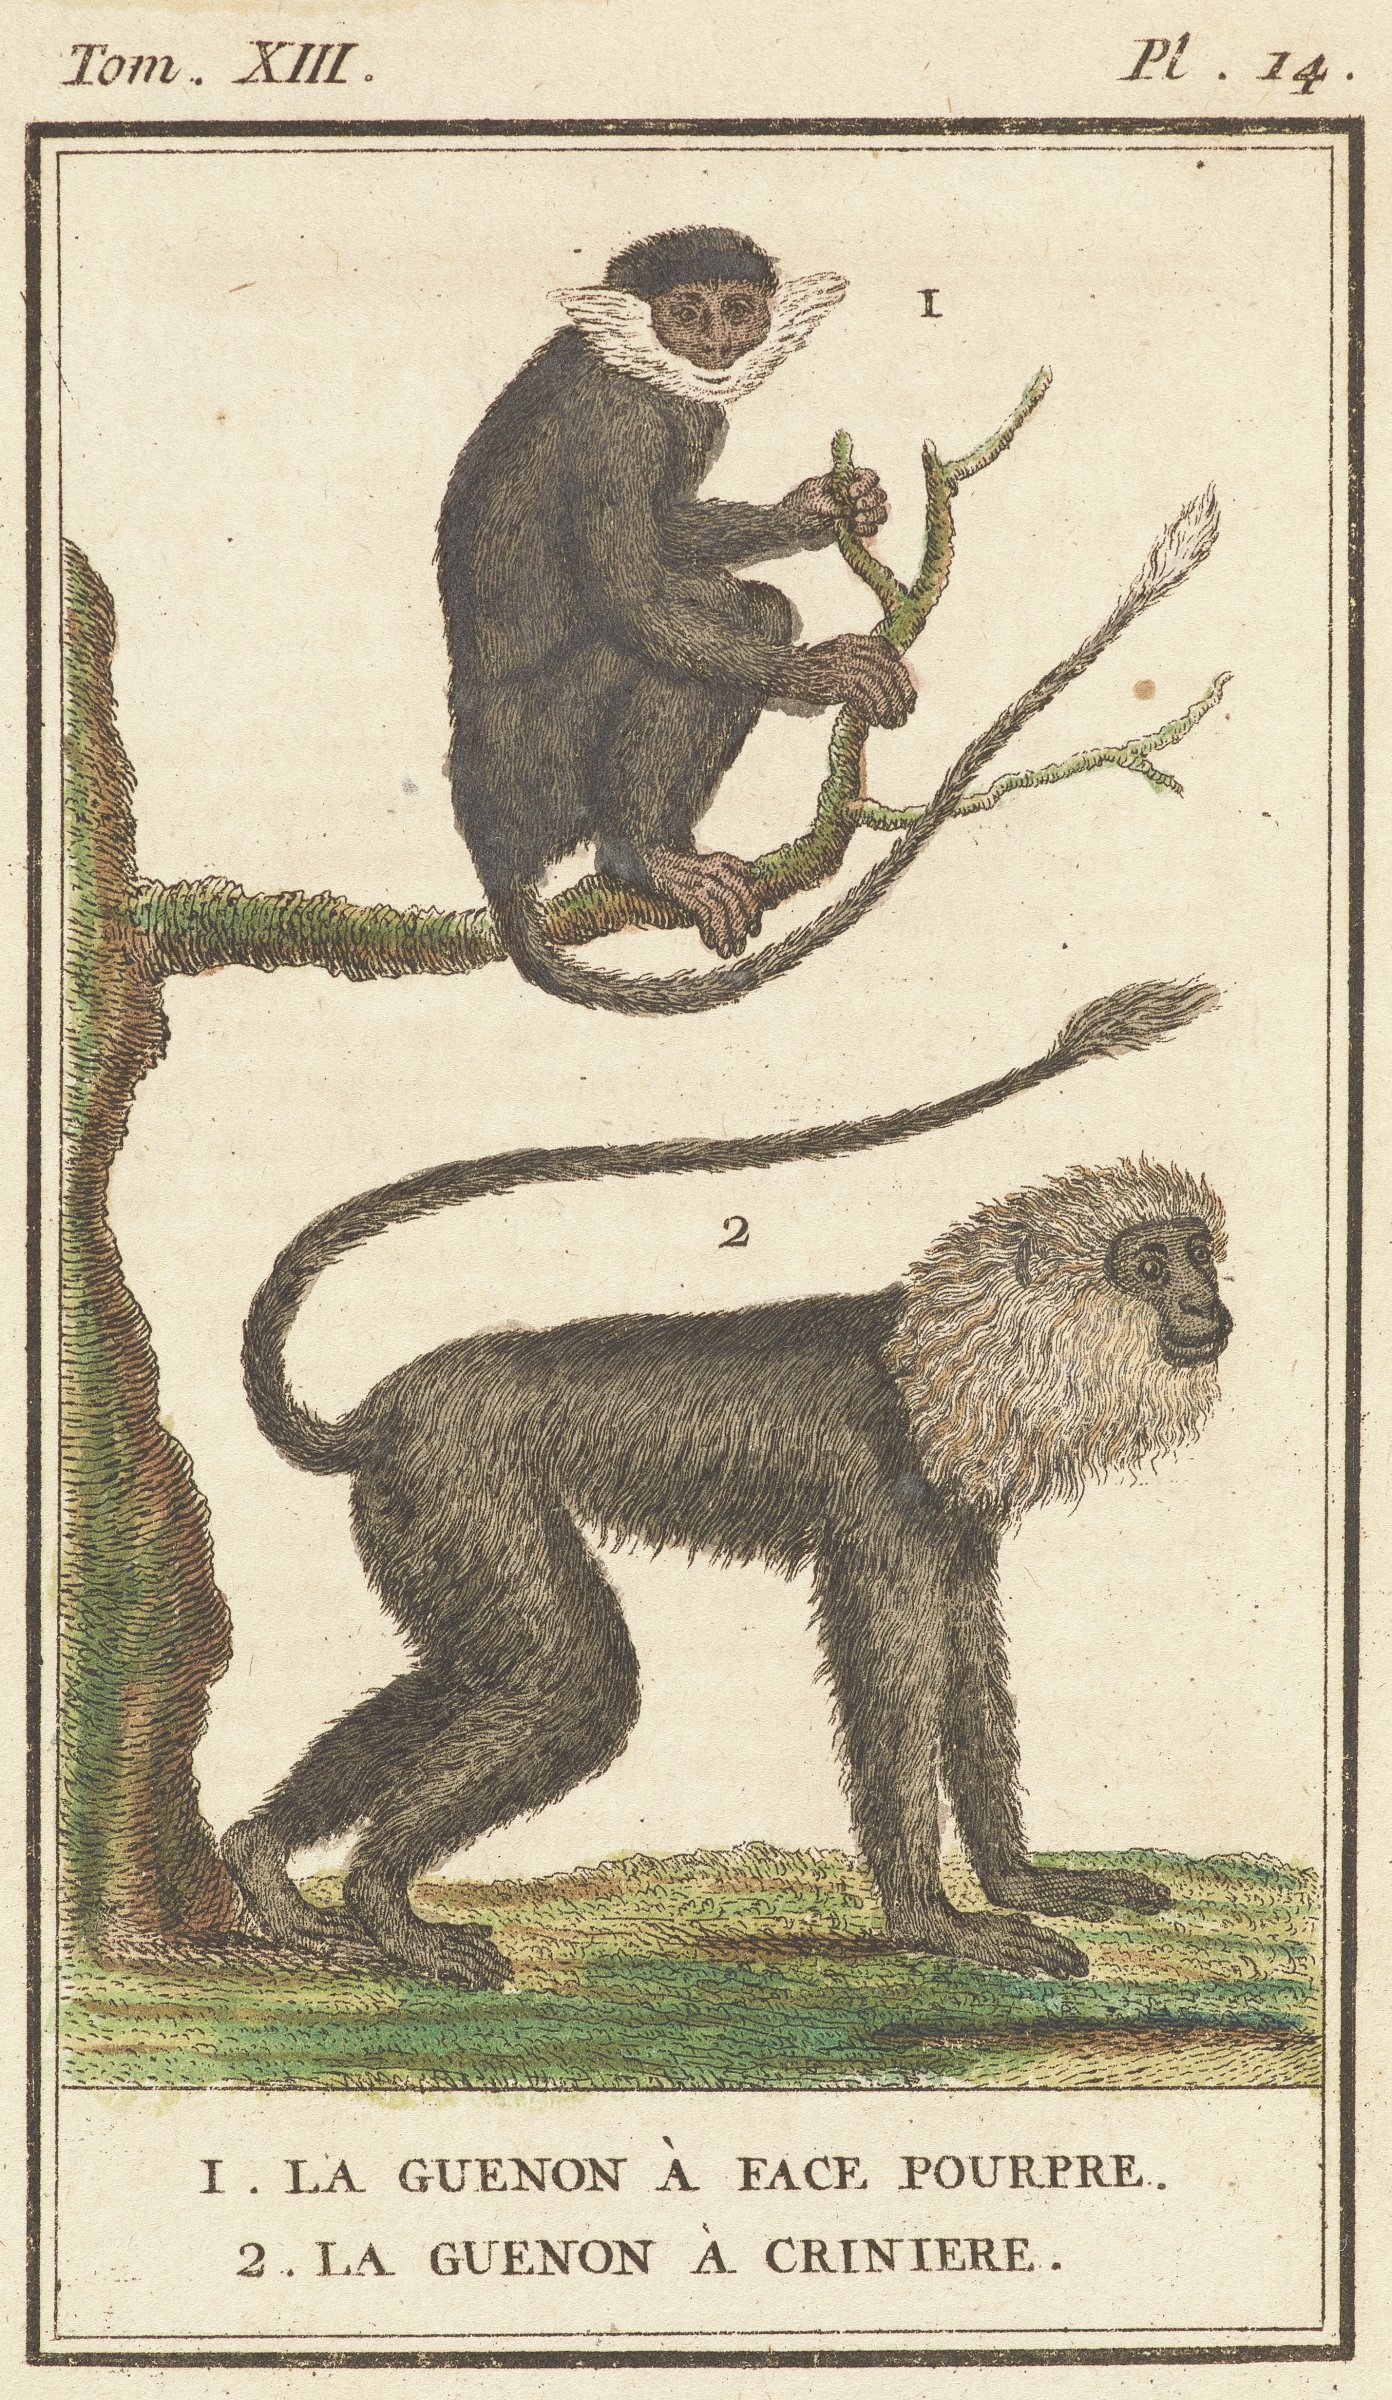 Two monkeys are depicted. One monkey sits on a tree limb facing the viewer. The second monkey stands on all fours on the ground.